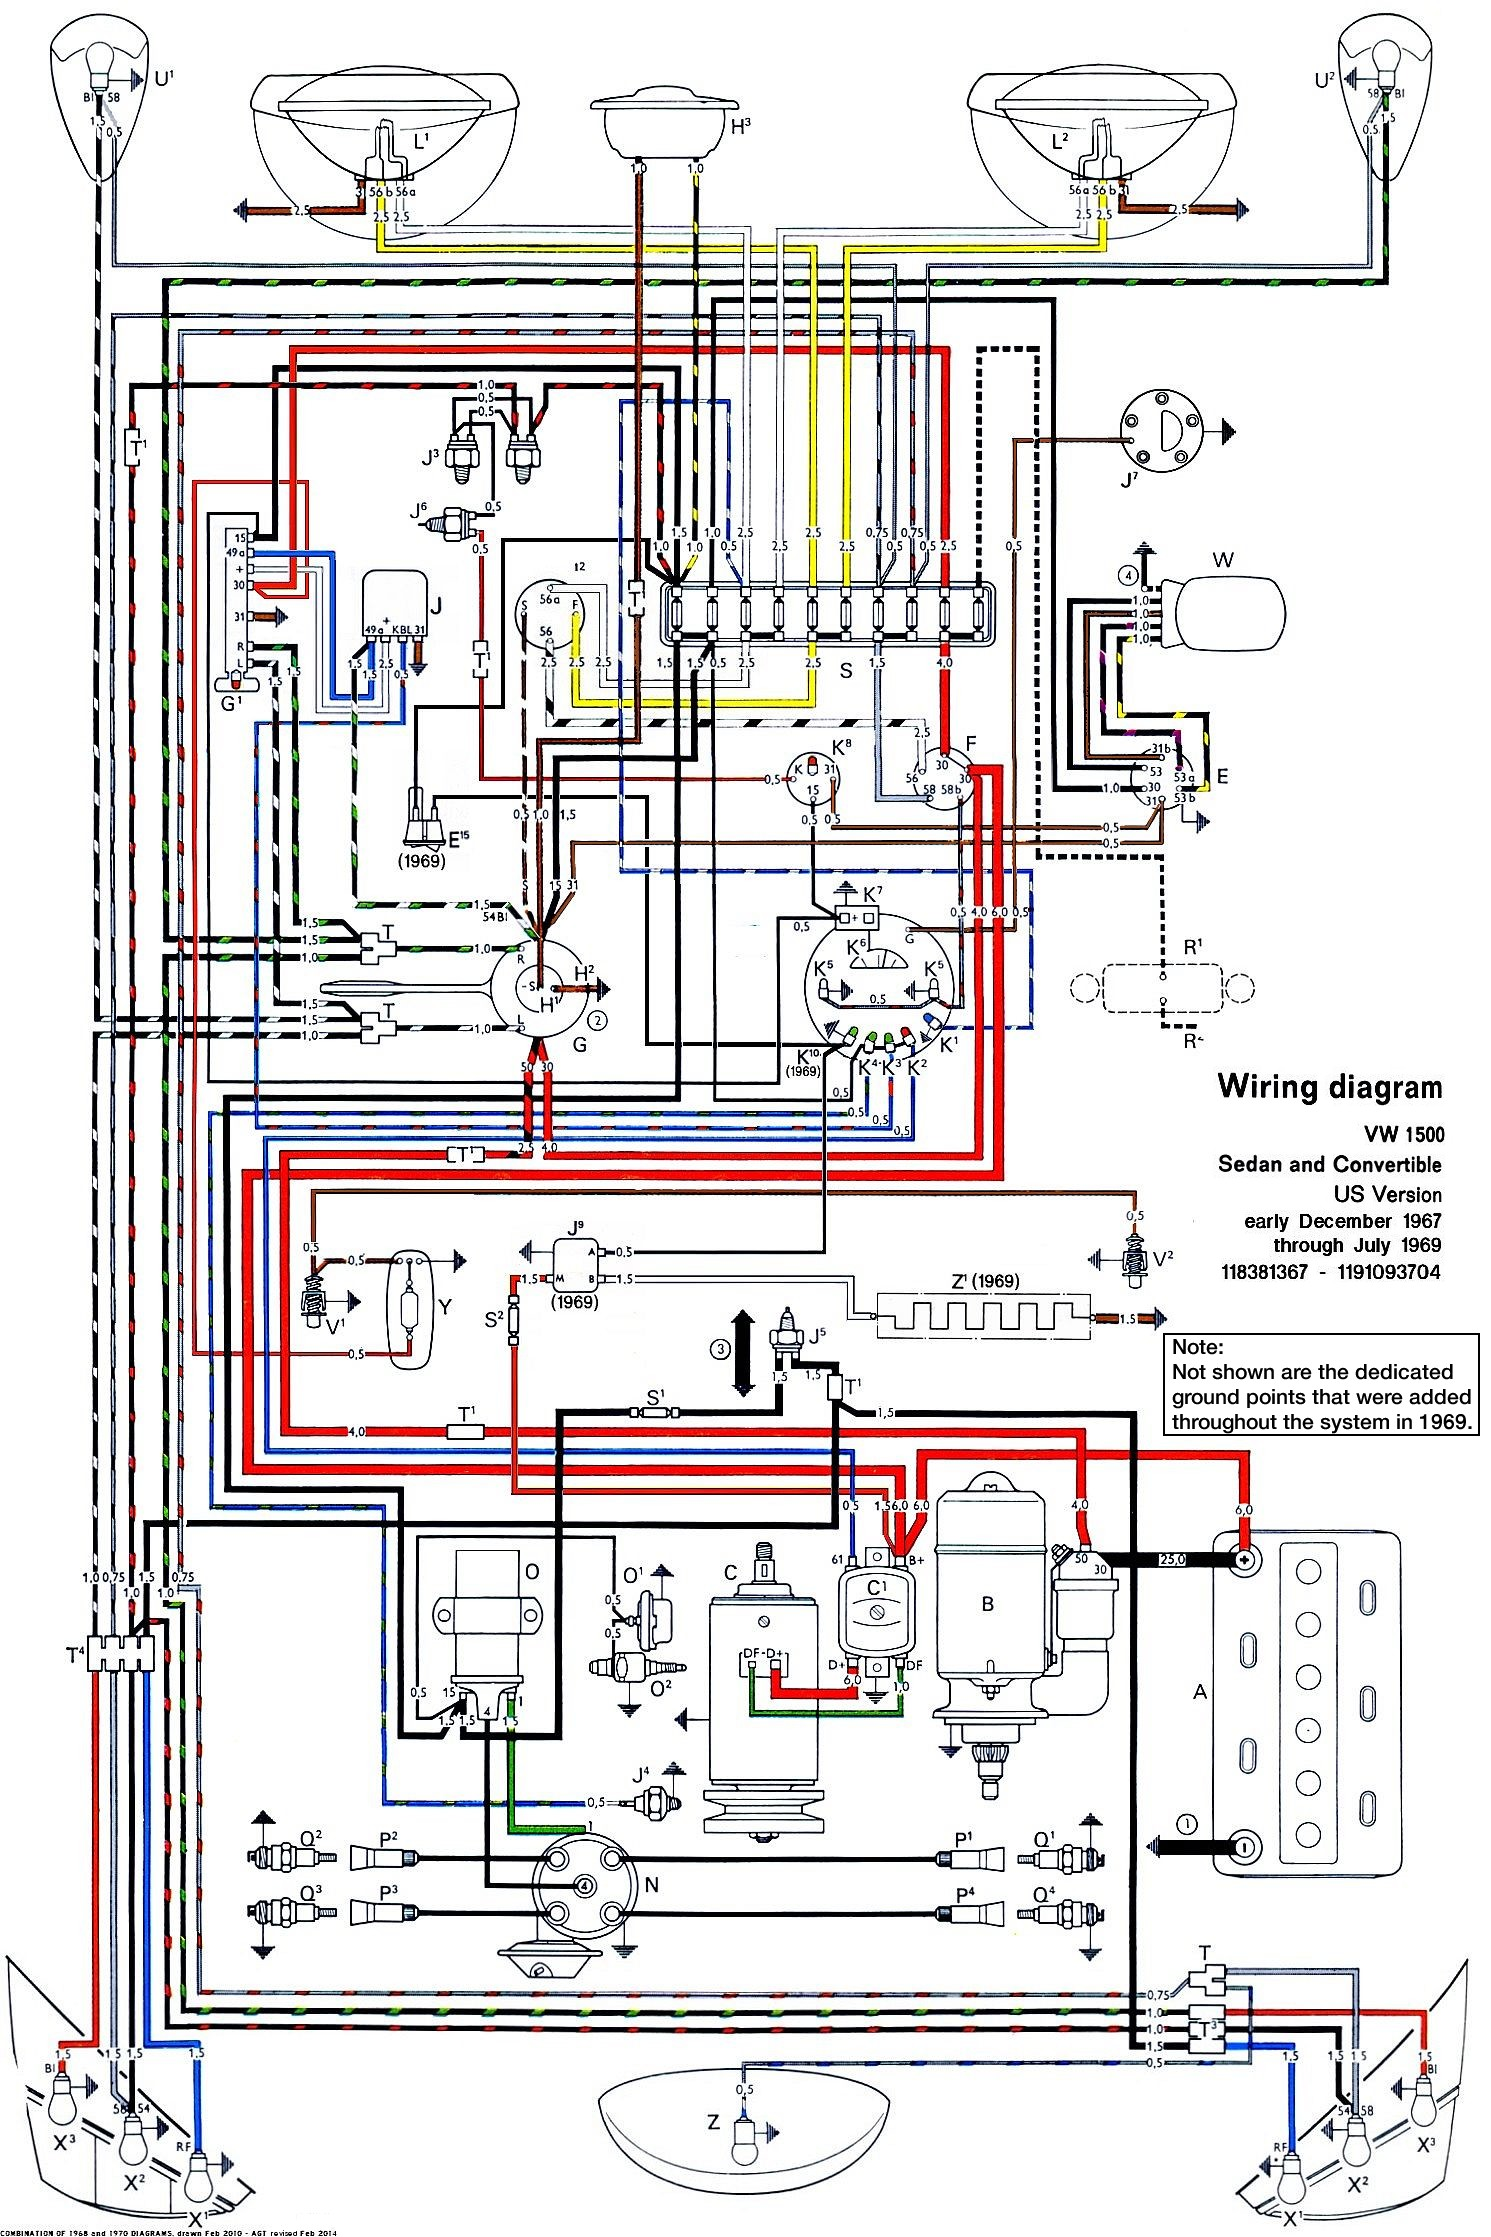 1969 jeepster wiring diagram headlight chevrolet wiring